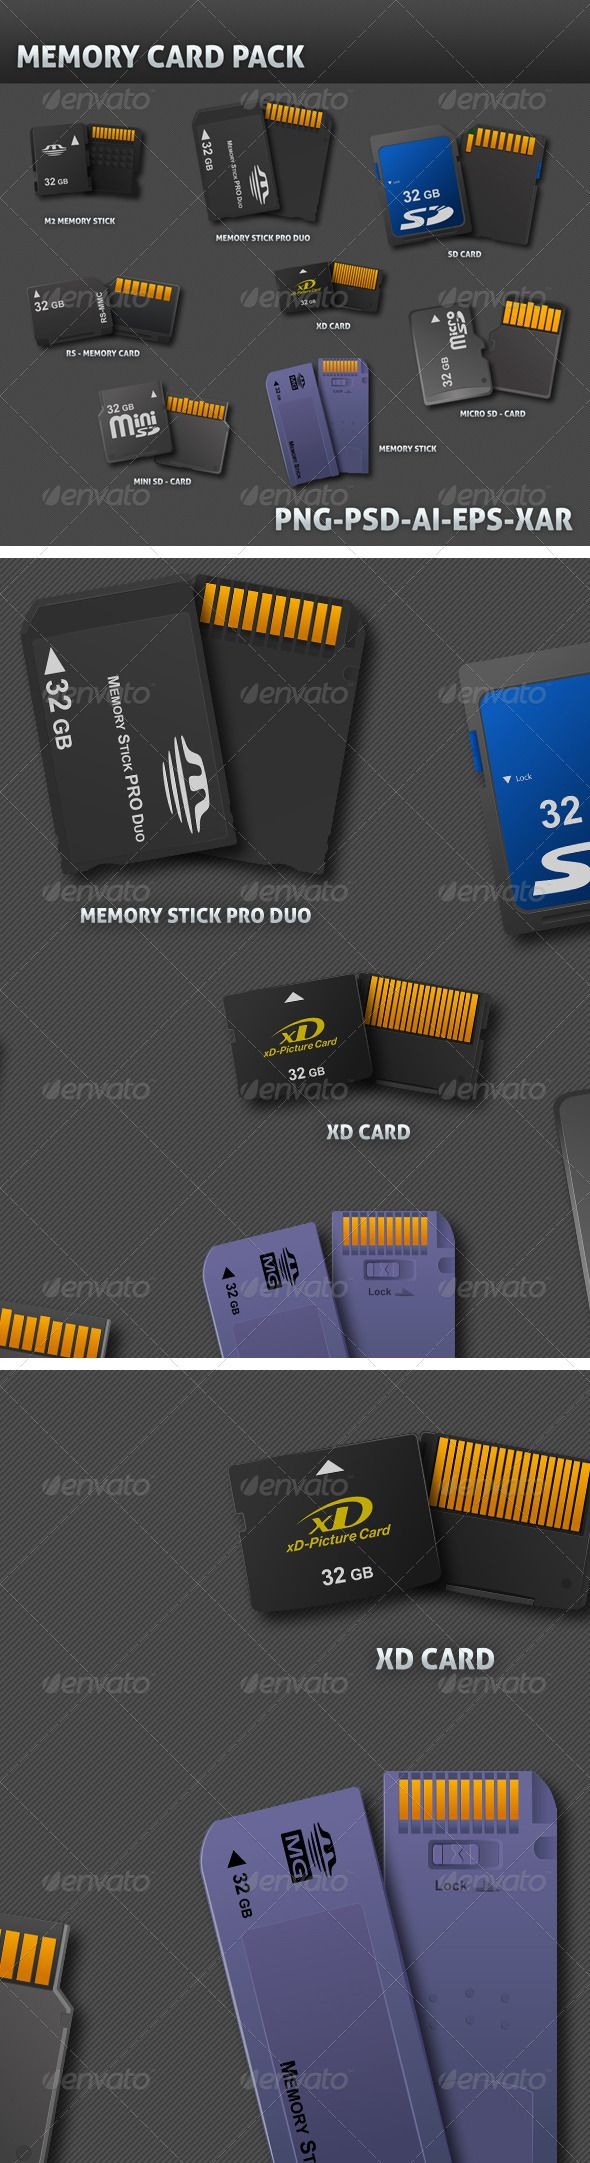 8 Realistic Memory Card 3D Vector #GraphicRiver 8 Realistic 3d Vector of memory card 1. MEMORY STICK 2. MEMORY STICK PRO DUO 3. M2 MEMORY 4. SD CARD 5. RS MEMORY 6. XD CARD 7. MINI SD 8. MICRO SD Available in PSD ,AI,EPS,PNG and xar (xara extreme pro 7 format) Created: 13July12 GraphicsFilesIncluded: PhotoshopPSD #TransparentPNG #VectorEPS #AIIllustrator Layered: Yes MinimumAdobeCSVersion: CS Tags: M2MEMORY #MEMORYSTICKPRODUO #MICROSD #MINISD #RSMEMORY #XDCARD #memorystick #sdcard